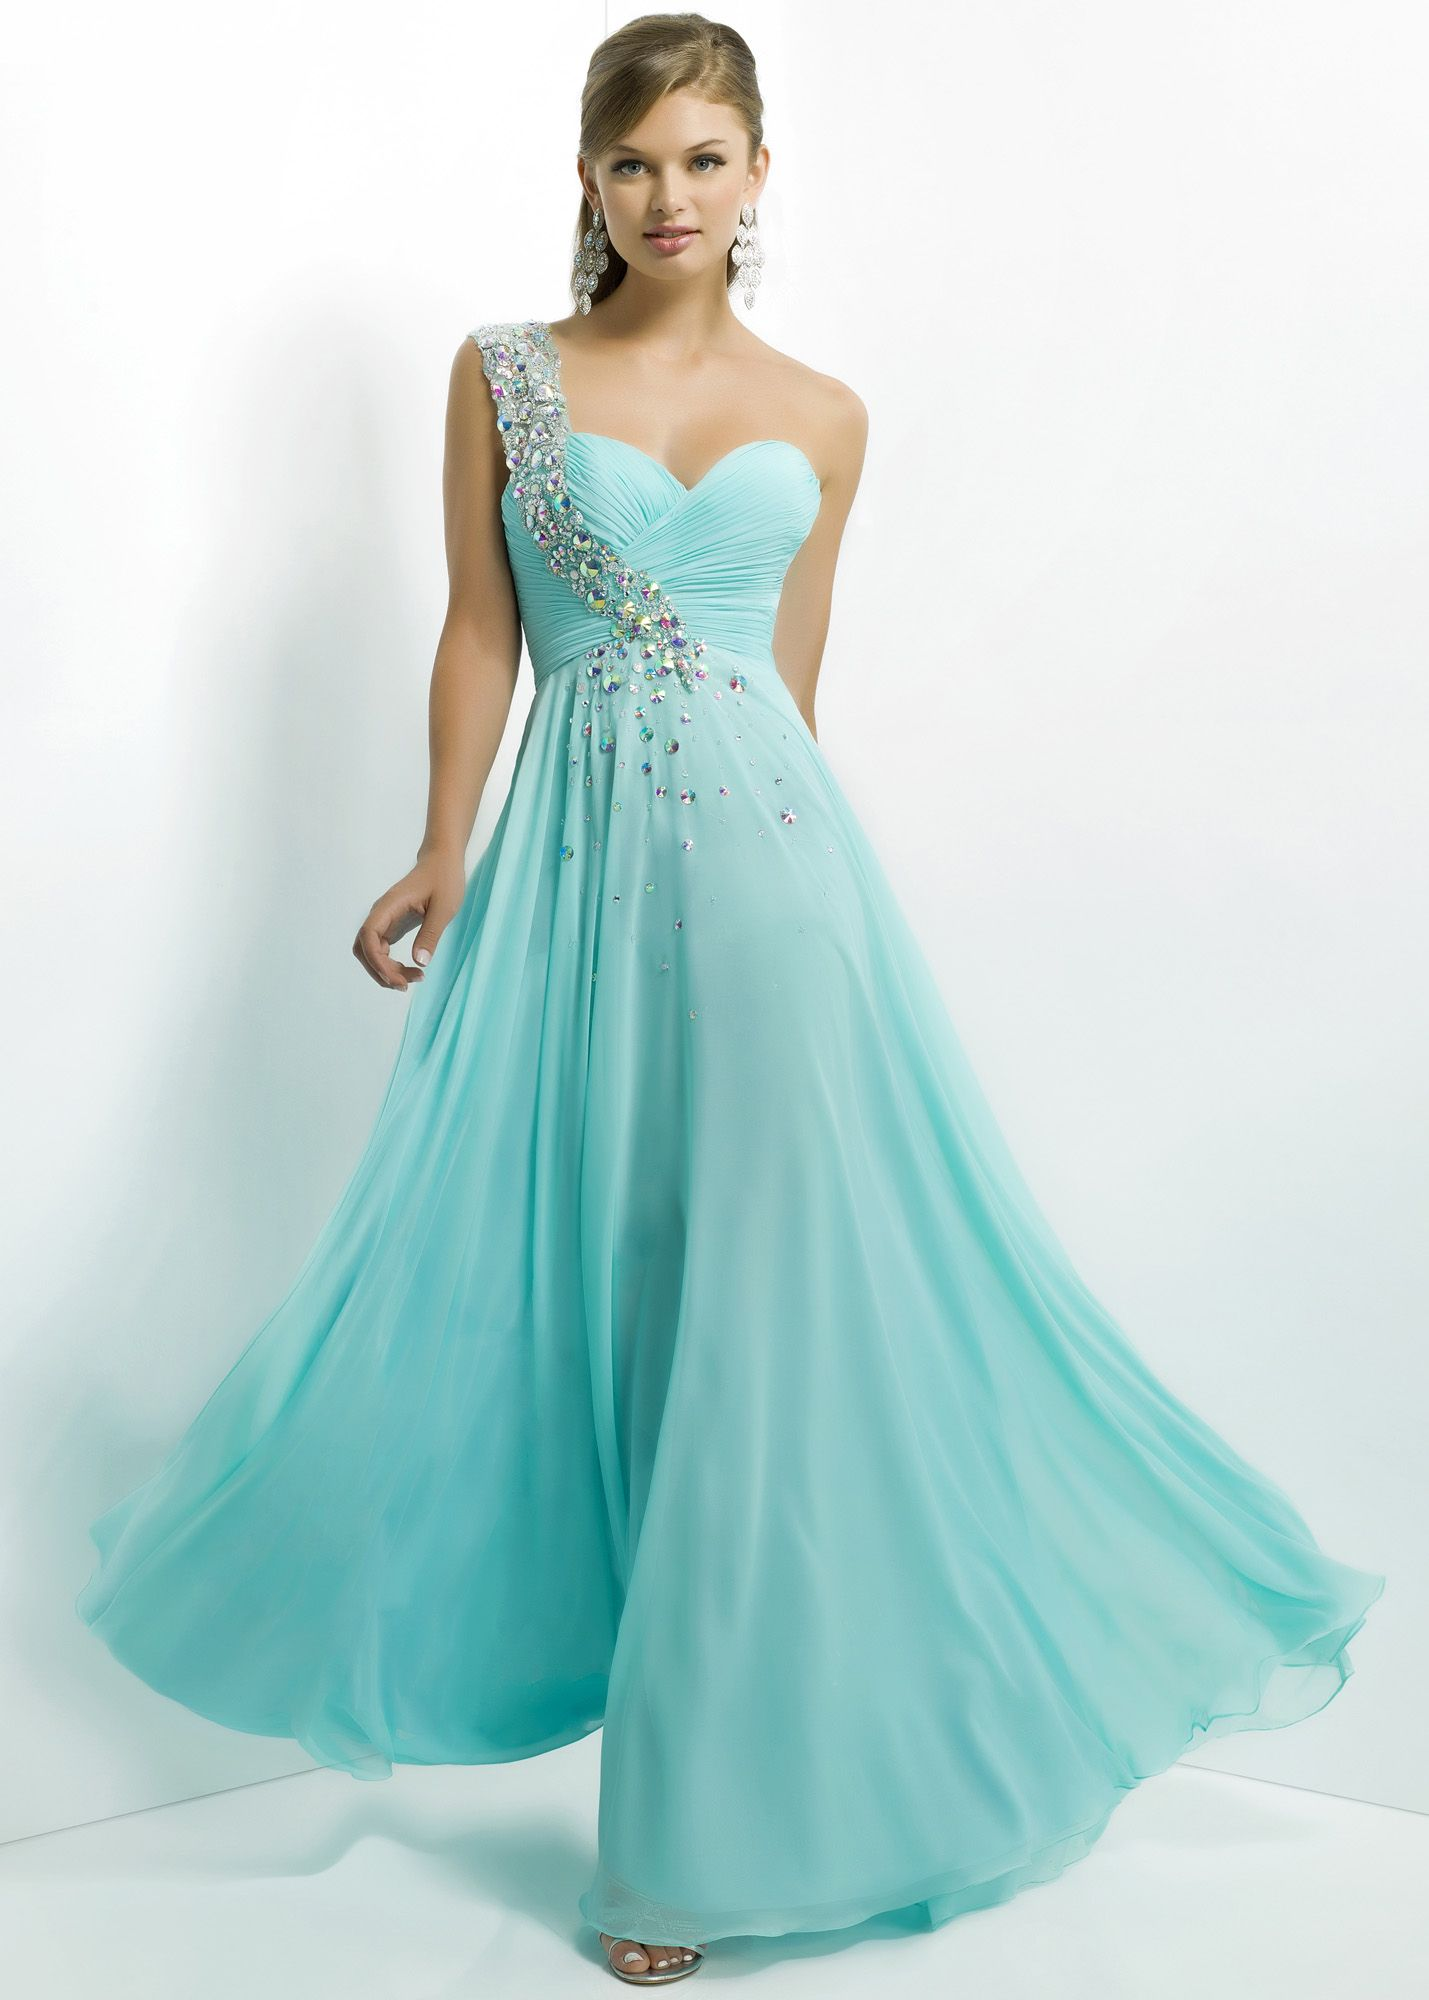 Aqua Long Blush Prom 9760 Beaded One Shoulder Prom Dress | long ...